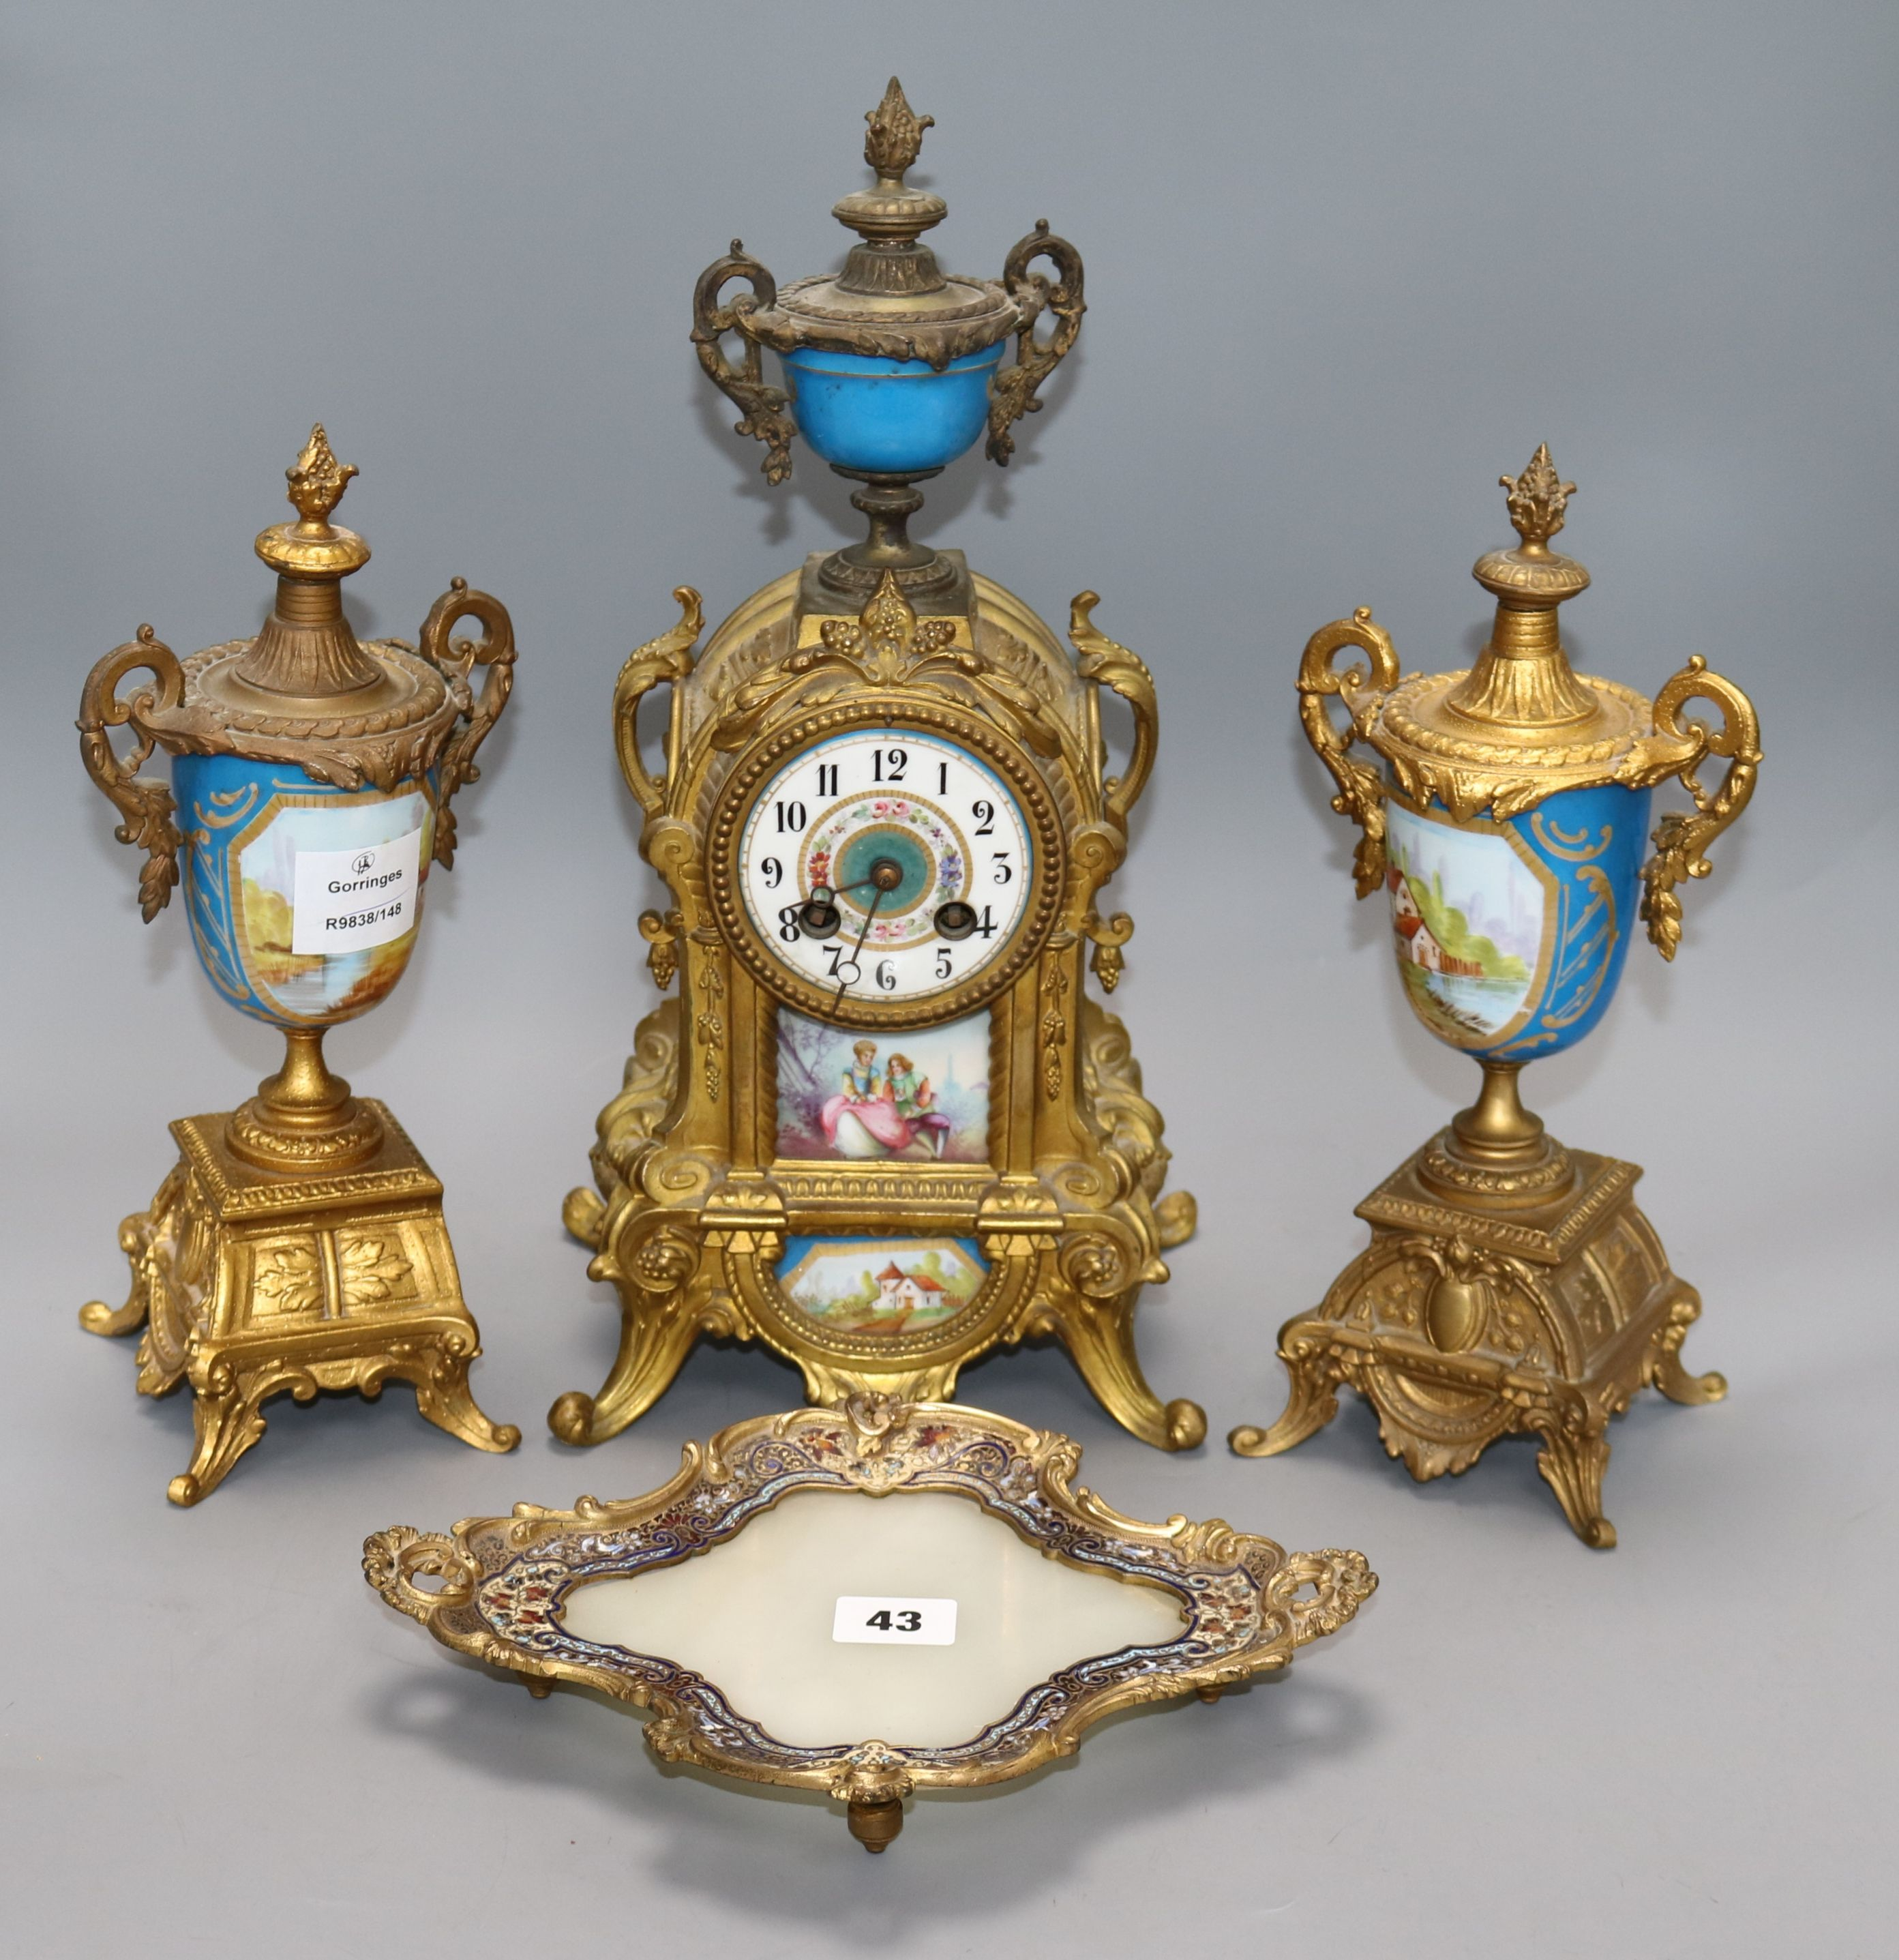 Lot 43 - A French gilt metal clock garniture and a tray height 39cm